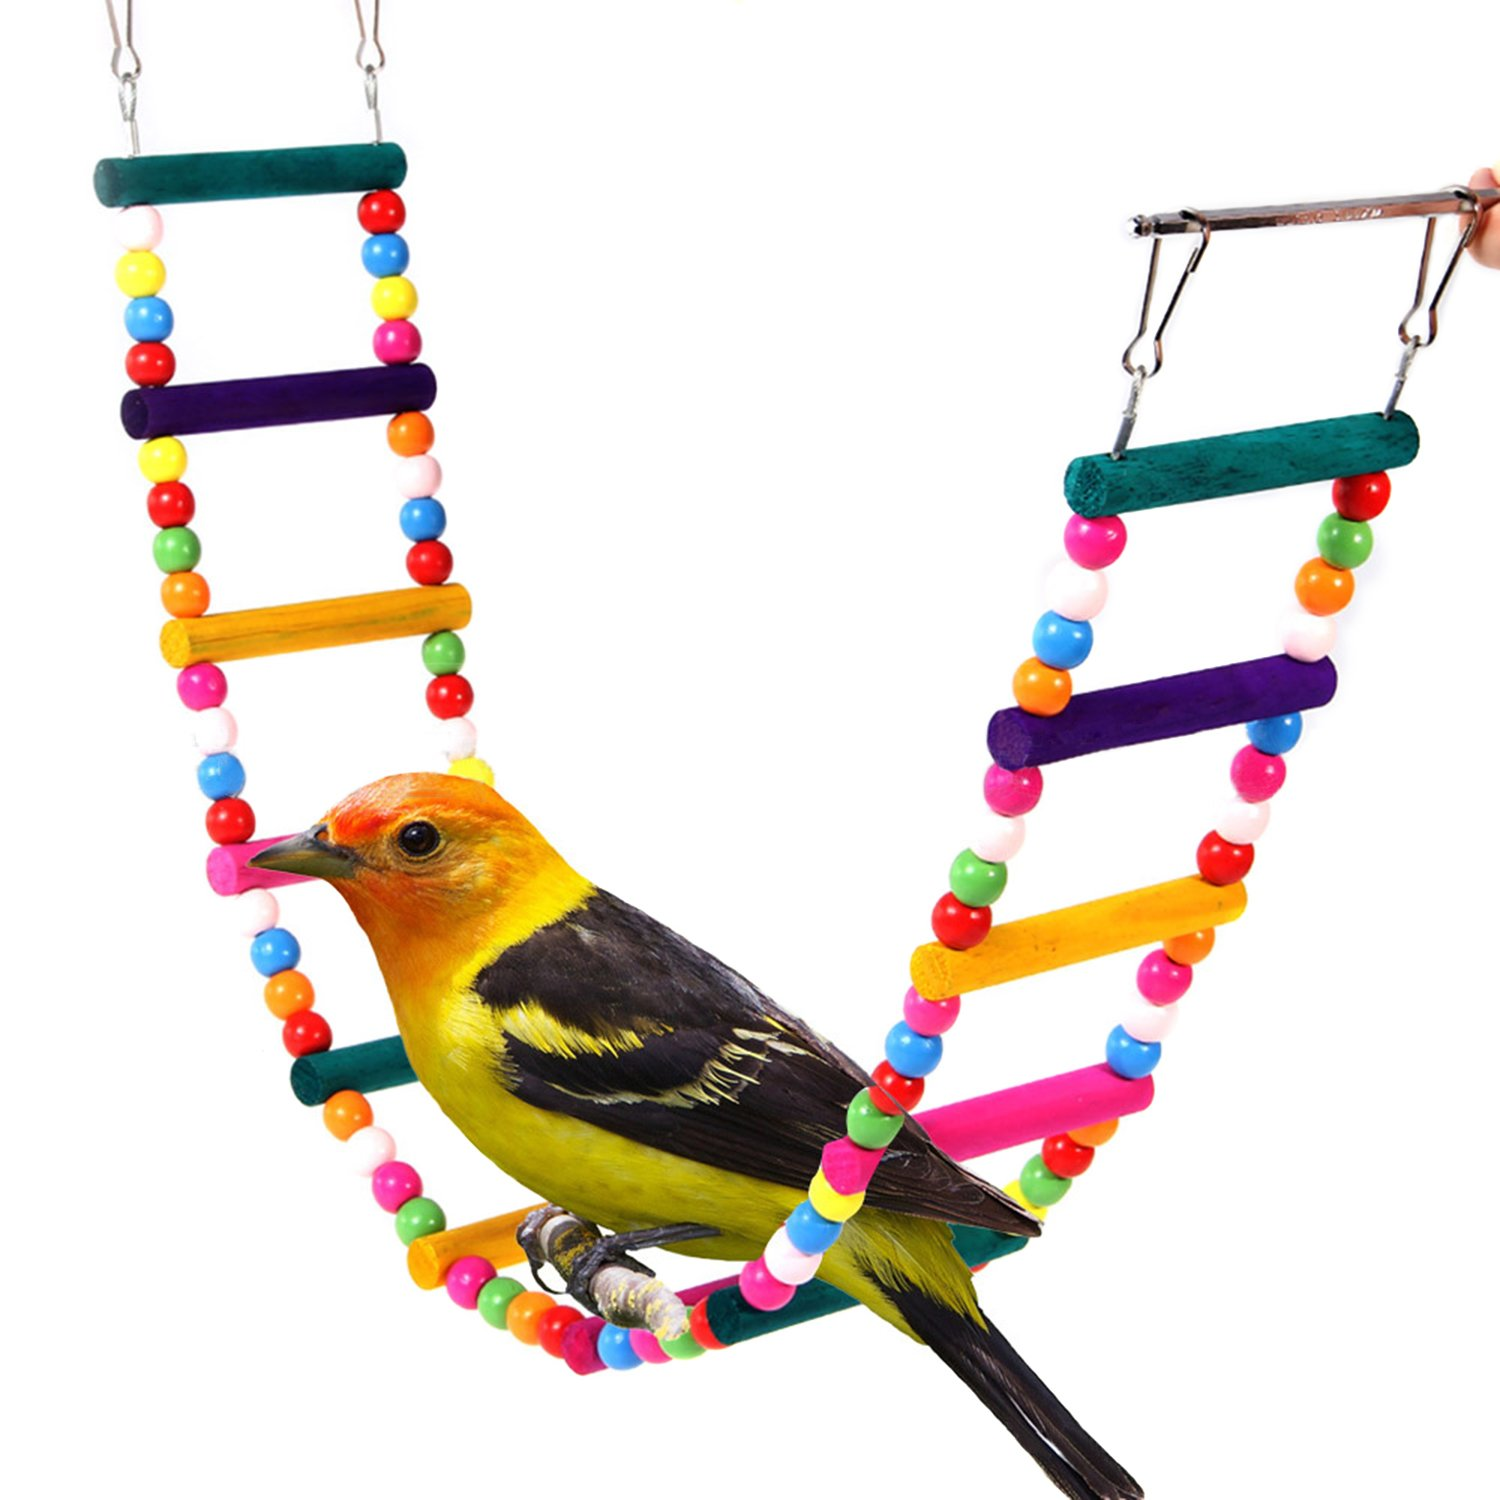 Rypet Colorful Ladder Bird Toy, Flexible Ladders Wooden Rainbow Bridge for Parrots Trainning